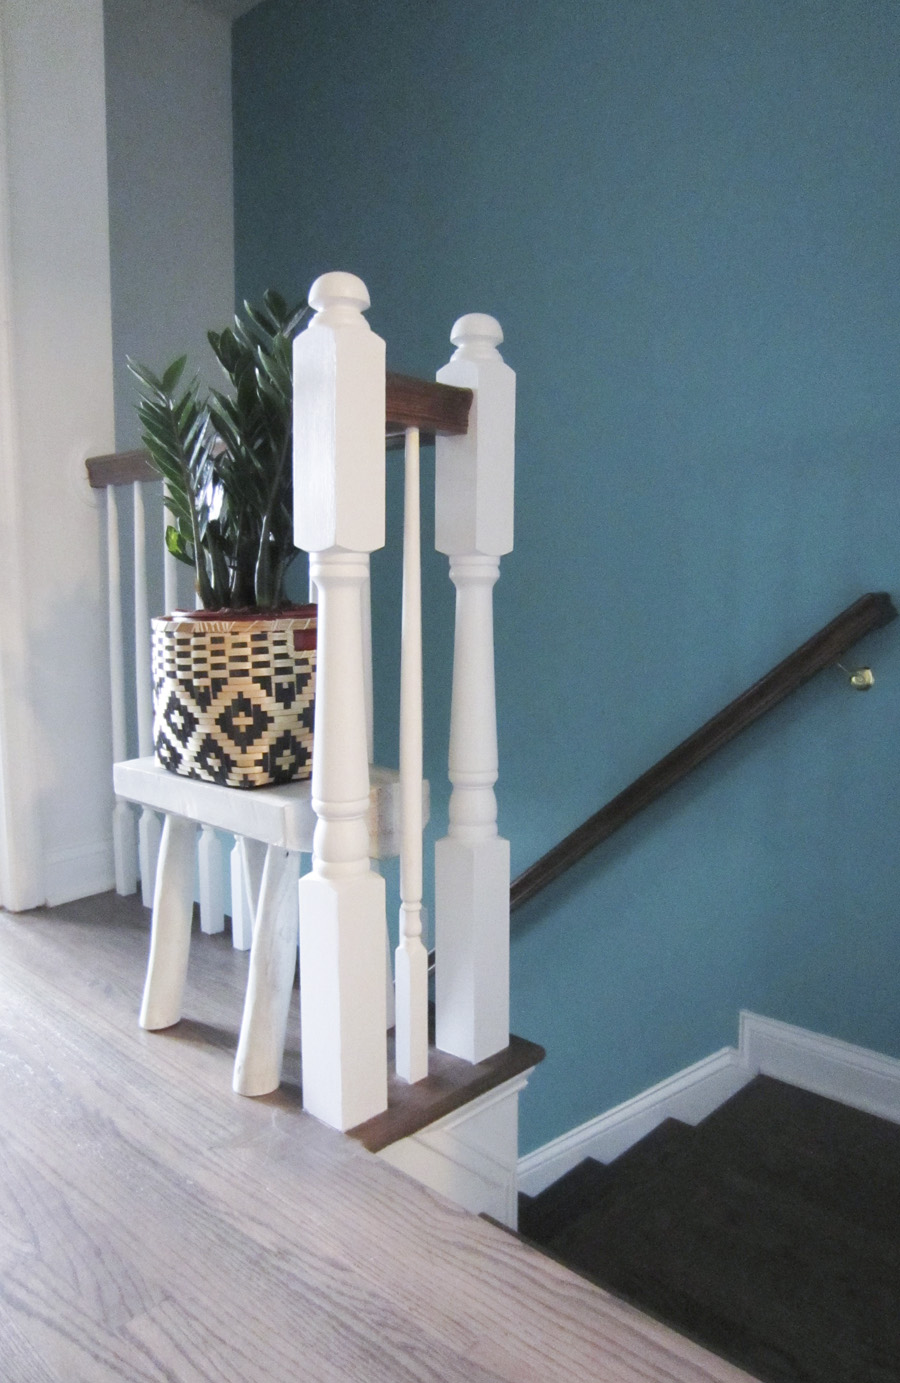 refinished-stairwell-2.jpg